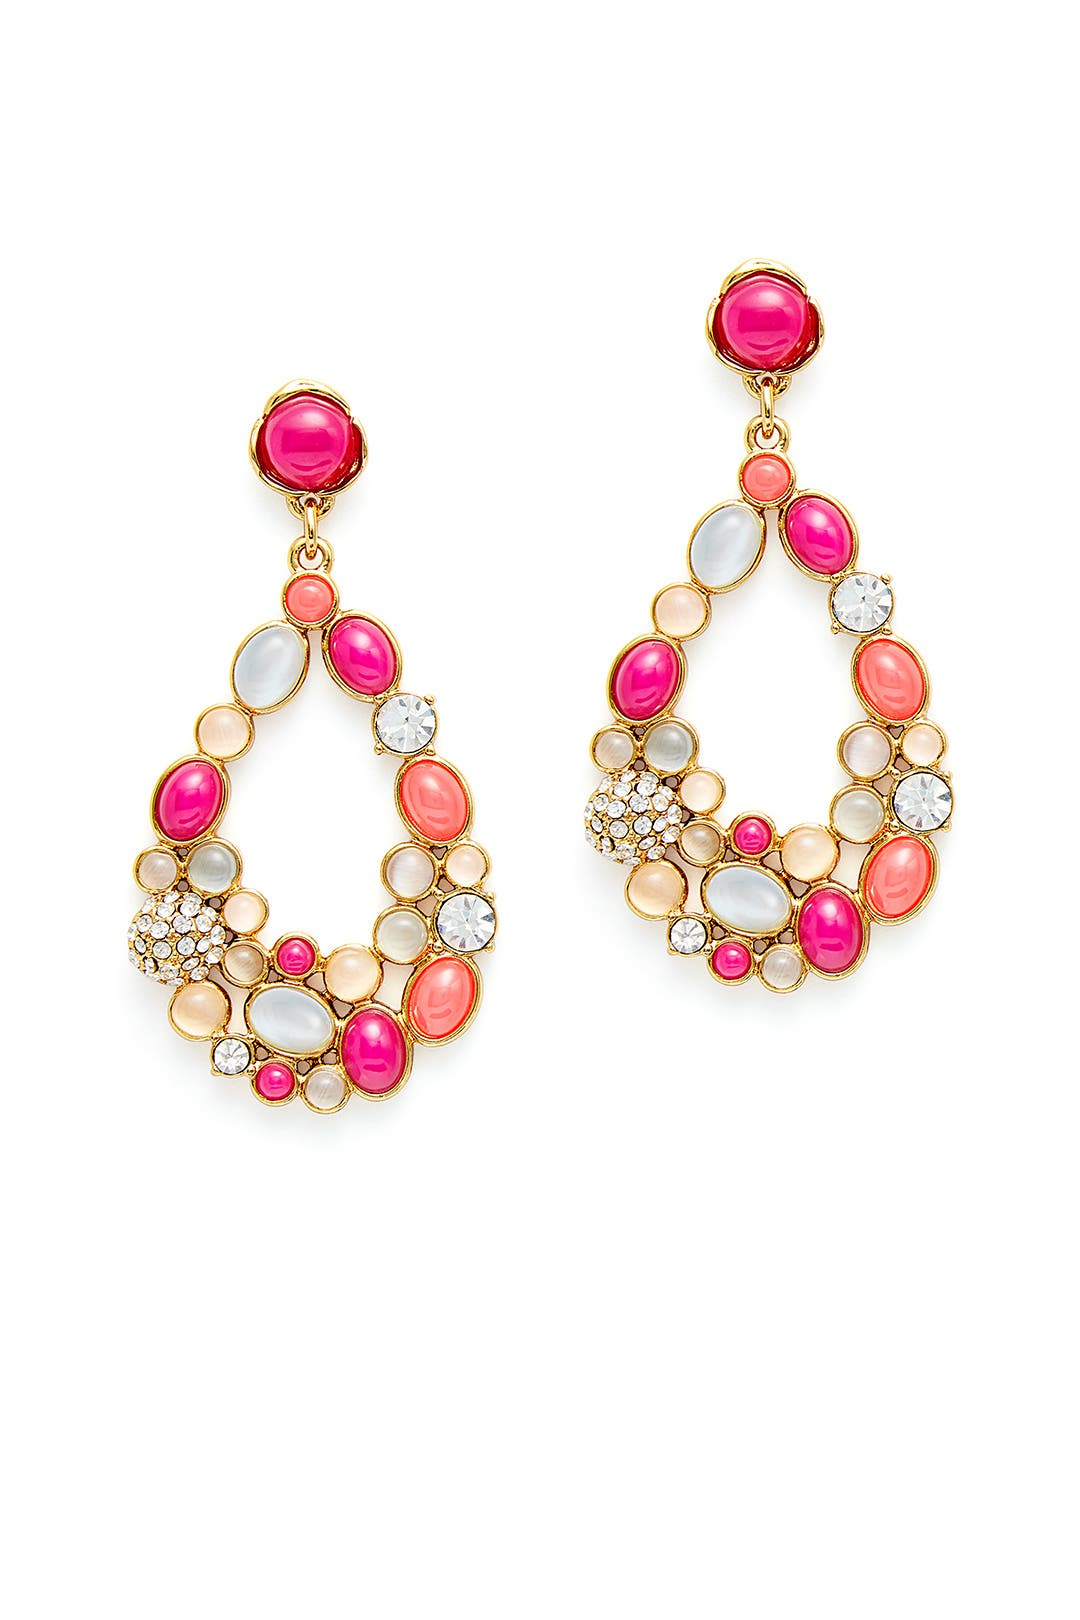 Uptown Earrings By Kate Spade New York Accessories For $47  Rent The Runway